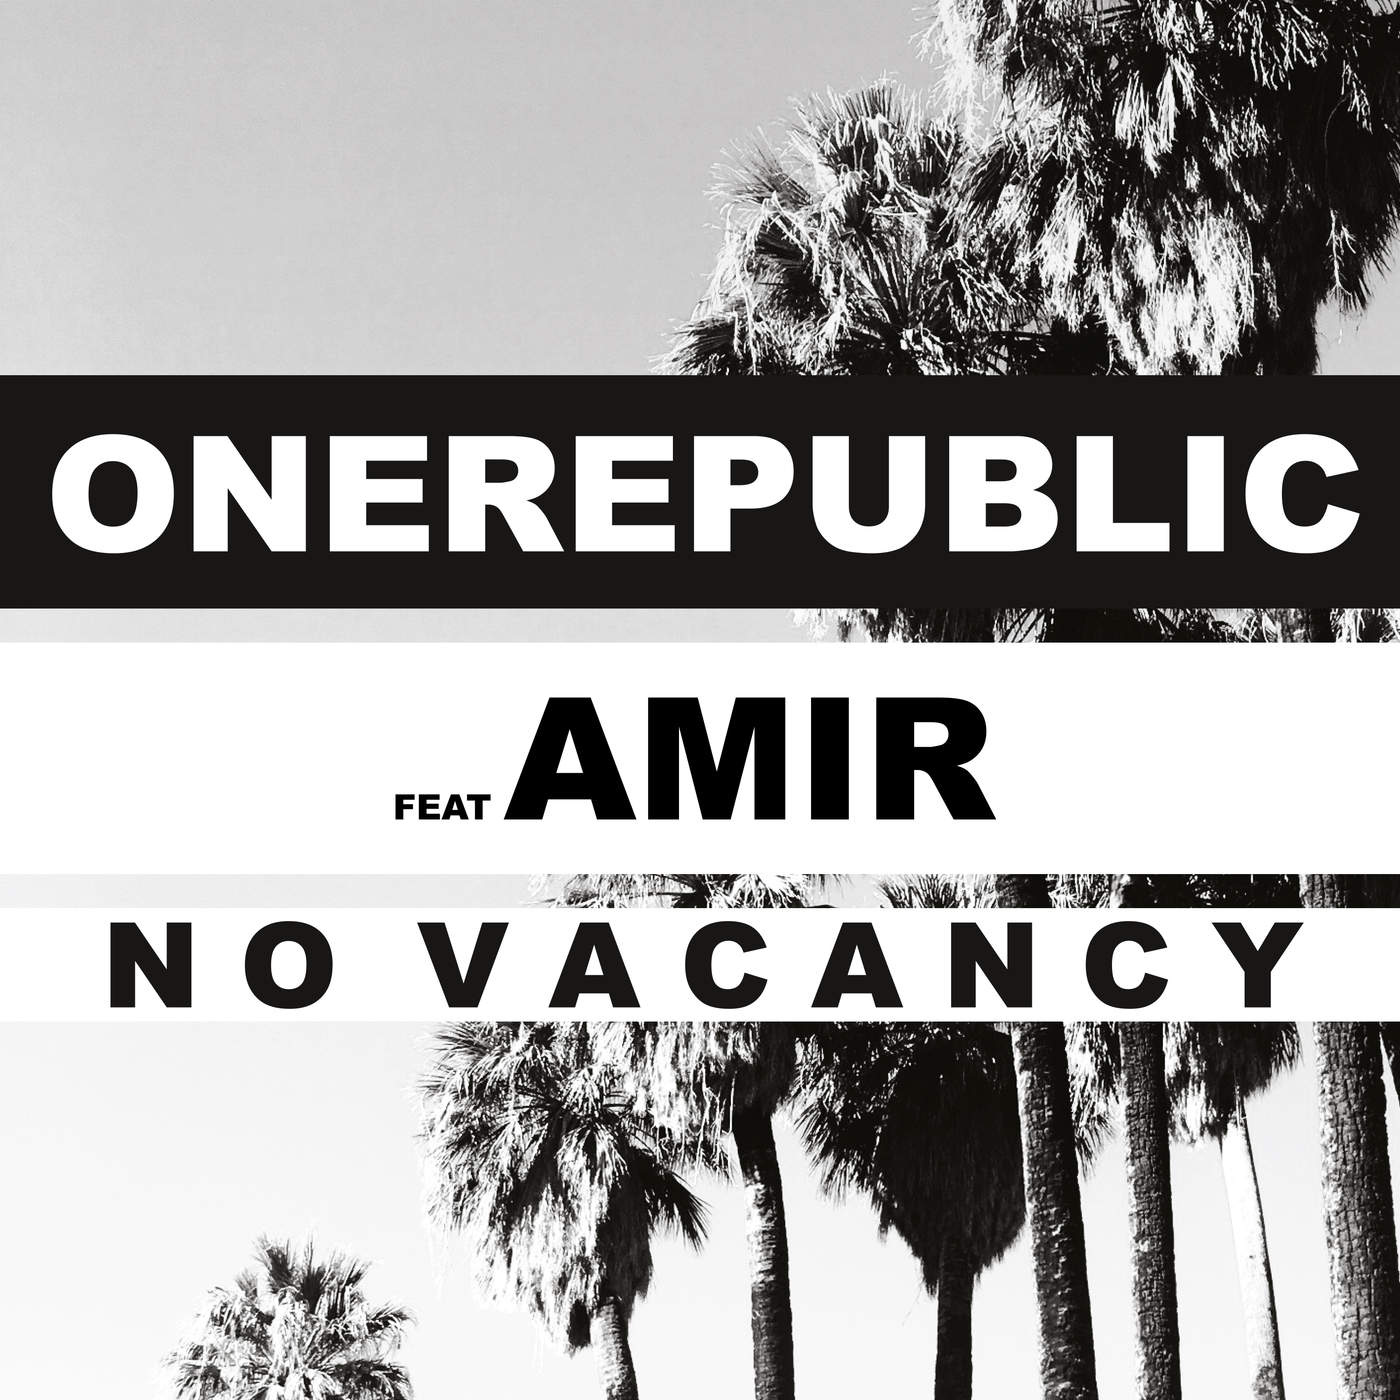 OneRepublic - No Vacancy (feat. Amir) [French Language Version] - Single Cover